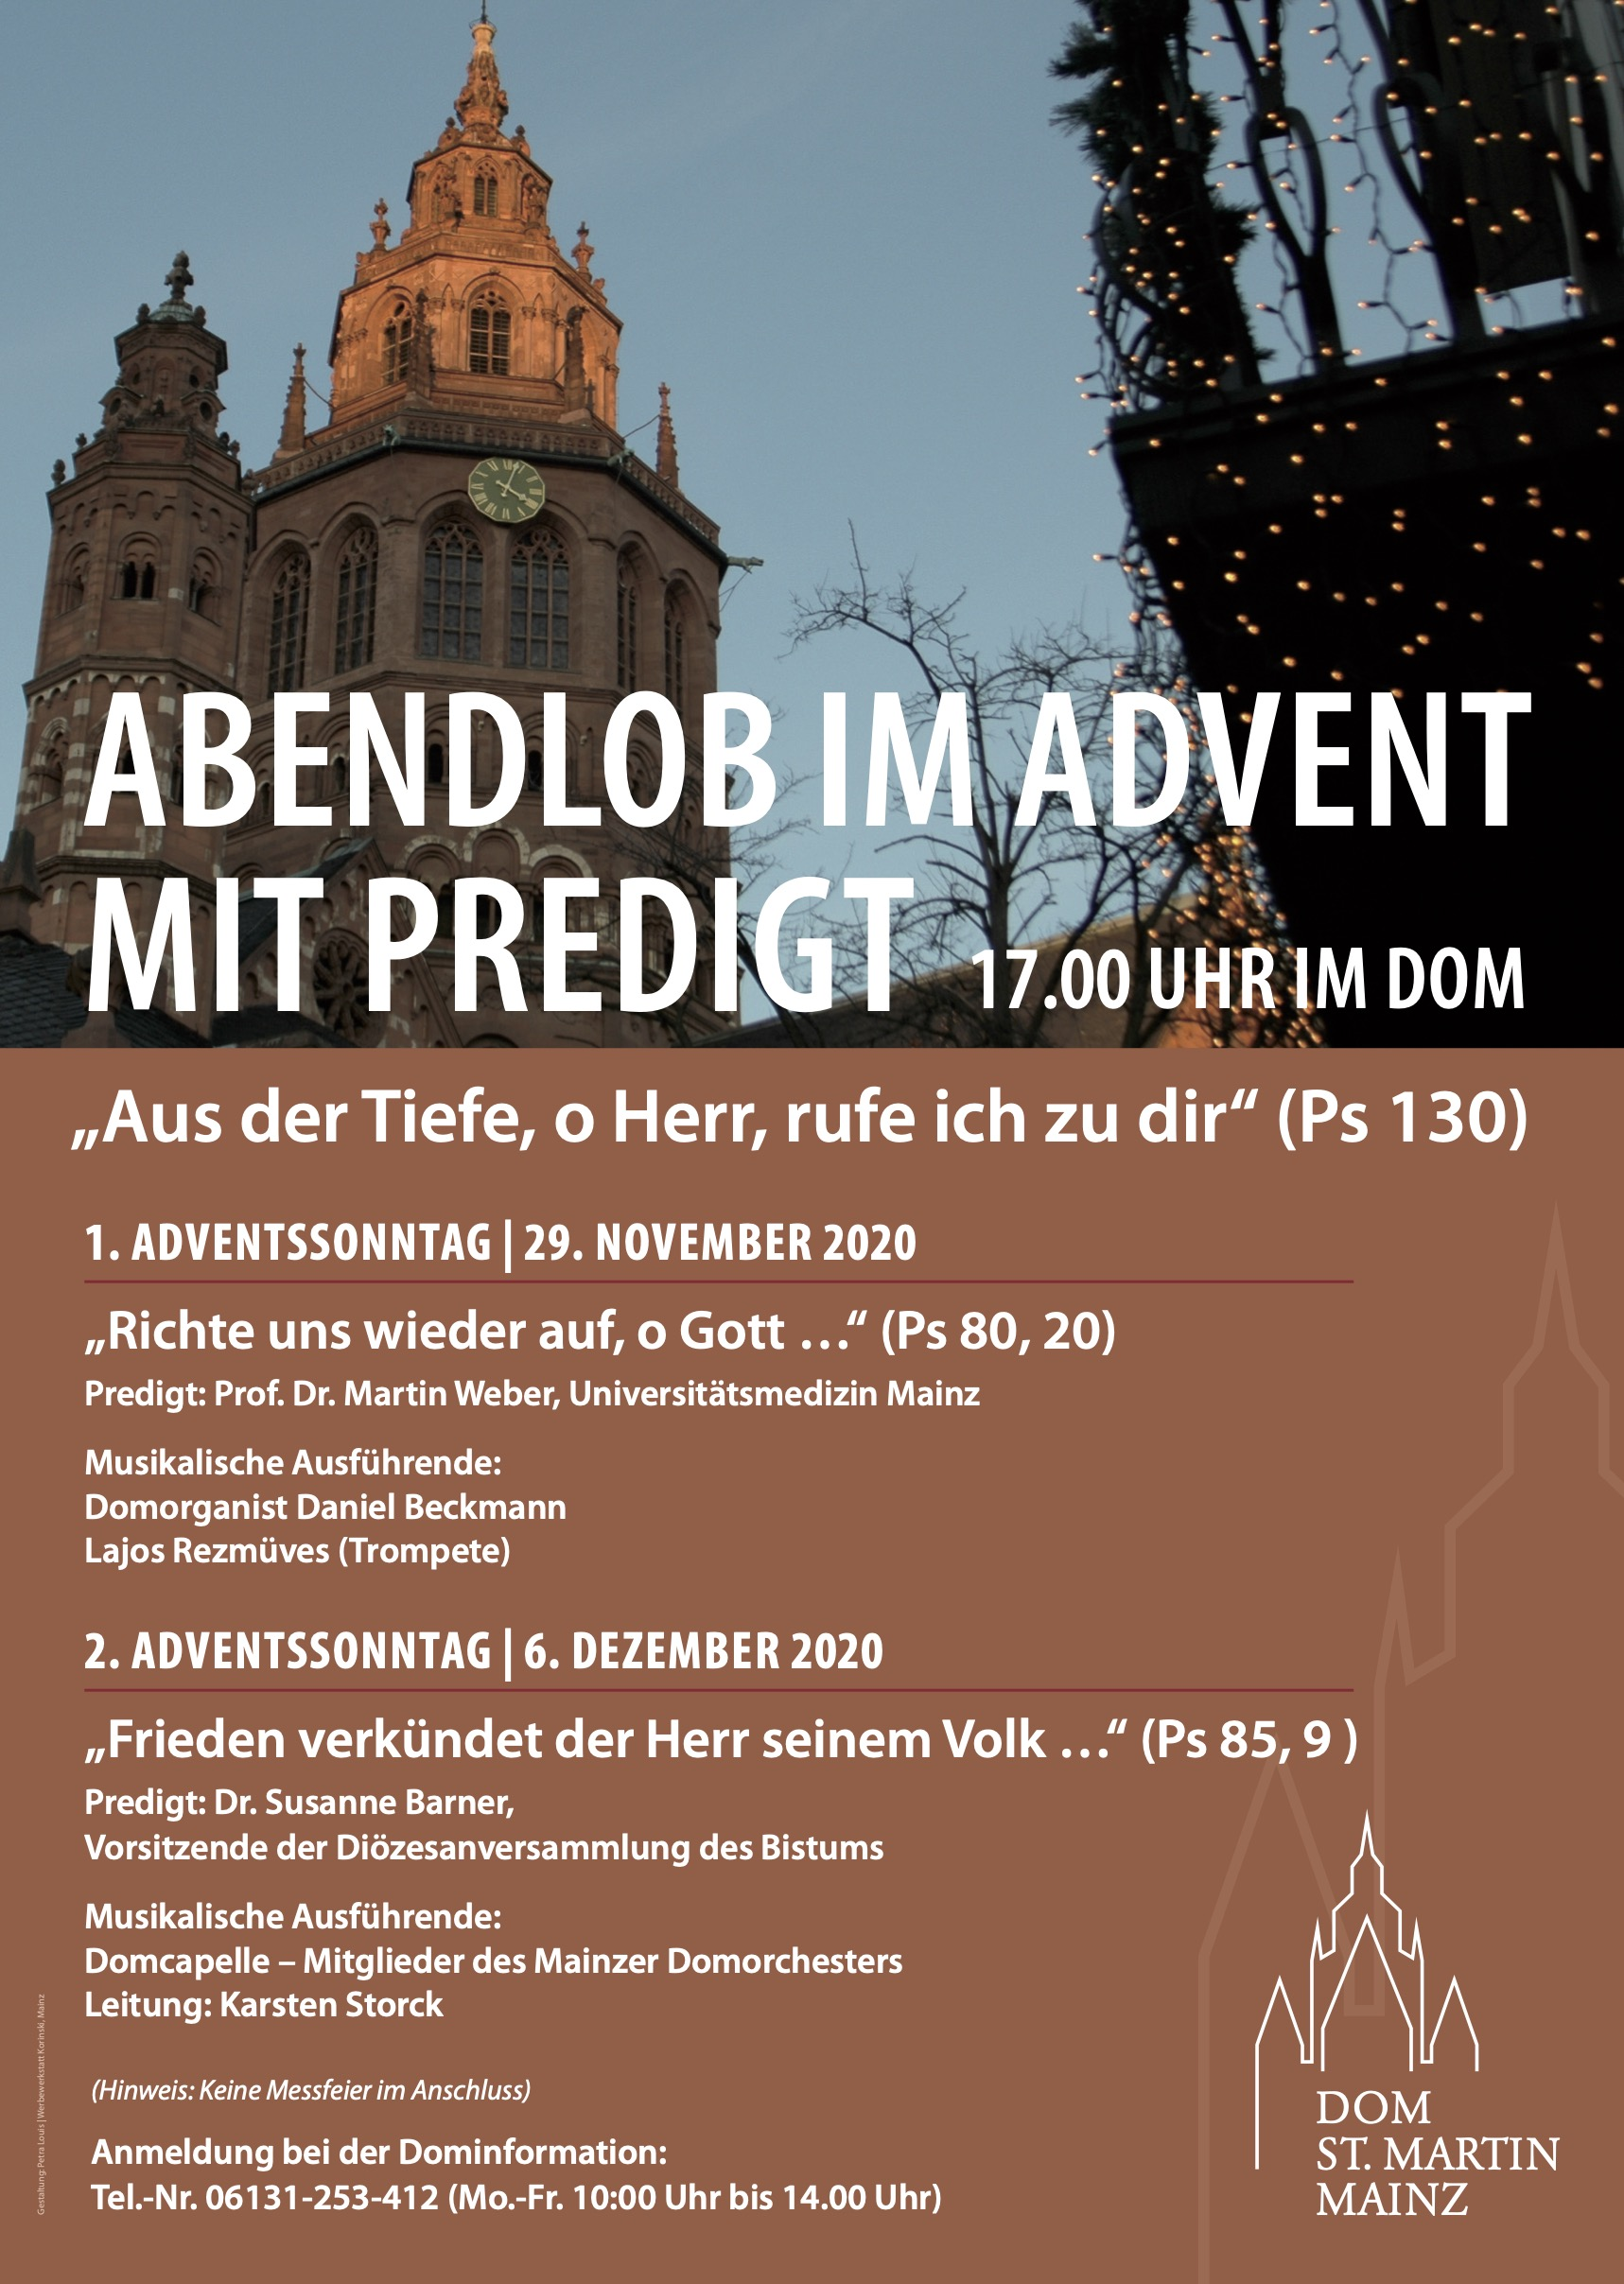 Abendlob_im Advent mit Predigt_2020 (c) Bistum Mainz